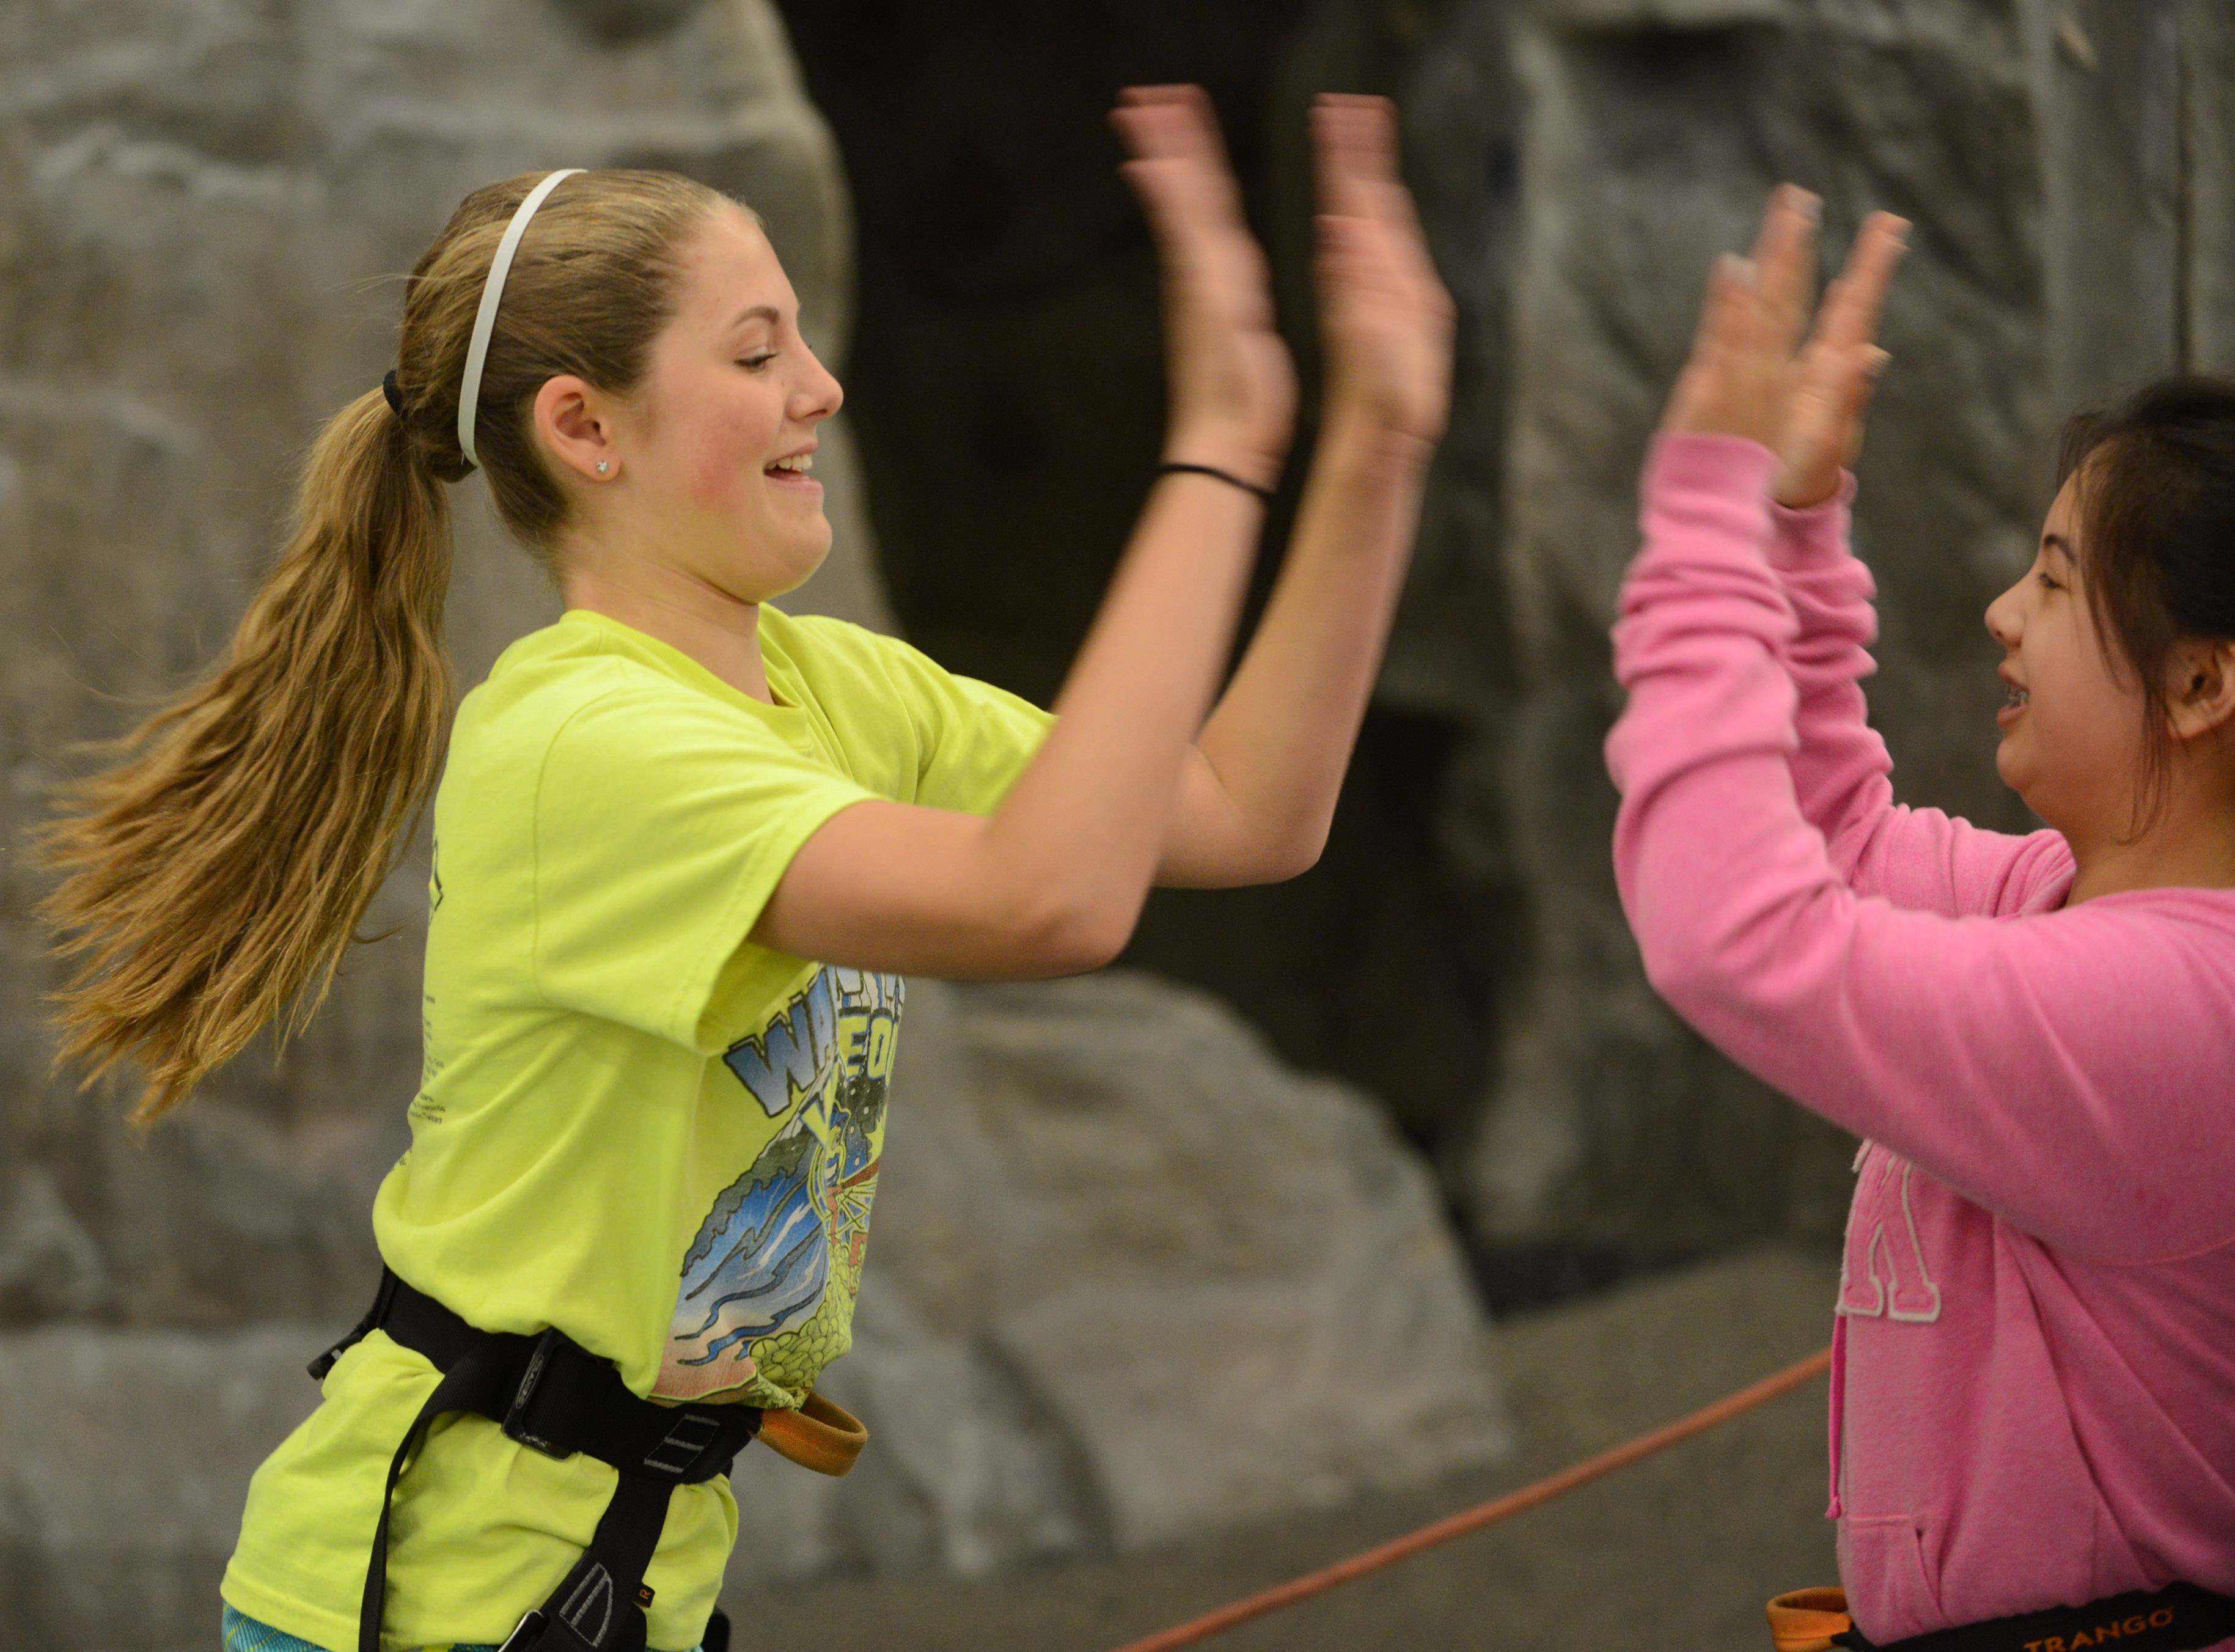 Woodland Middle School seventh grade student Kayla Nommensen, left, gives high-fives to schoolmate Julia De La Cruz after climbing the wall at the Libertyville Sports Complex on Wednesday. Two hundred students spent the day at the complex participating in a variety of sports and activities.